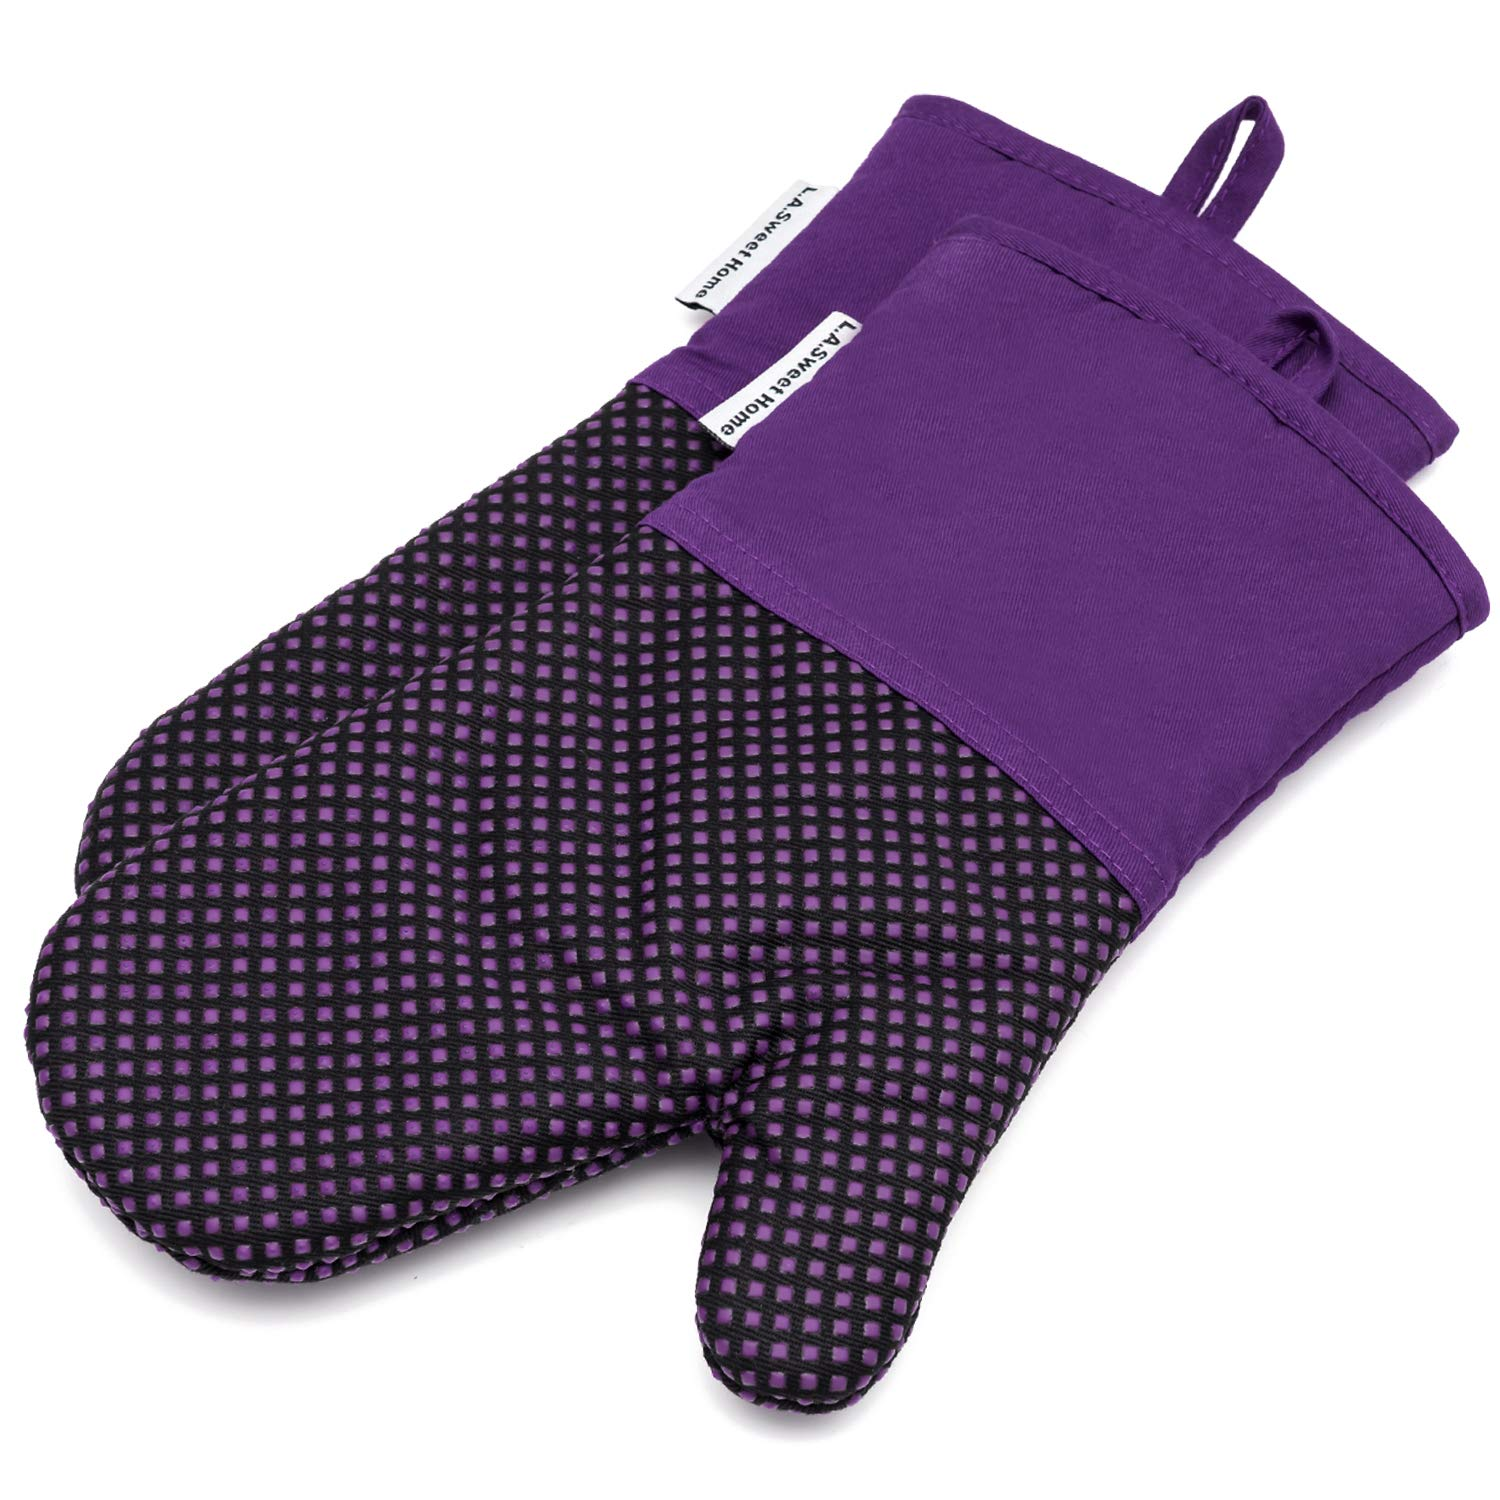 Silicone Oven Mitts 464 F Heat Resistant Potholders Dot Pattern Cooking Gloves Non-Slip Grip for Kitchen Oven BBQ Grill Cooking Baking 7x13 inch as Christmas Gift 1 pair (Purple) LA Sweet Home